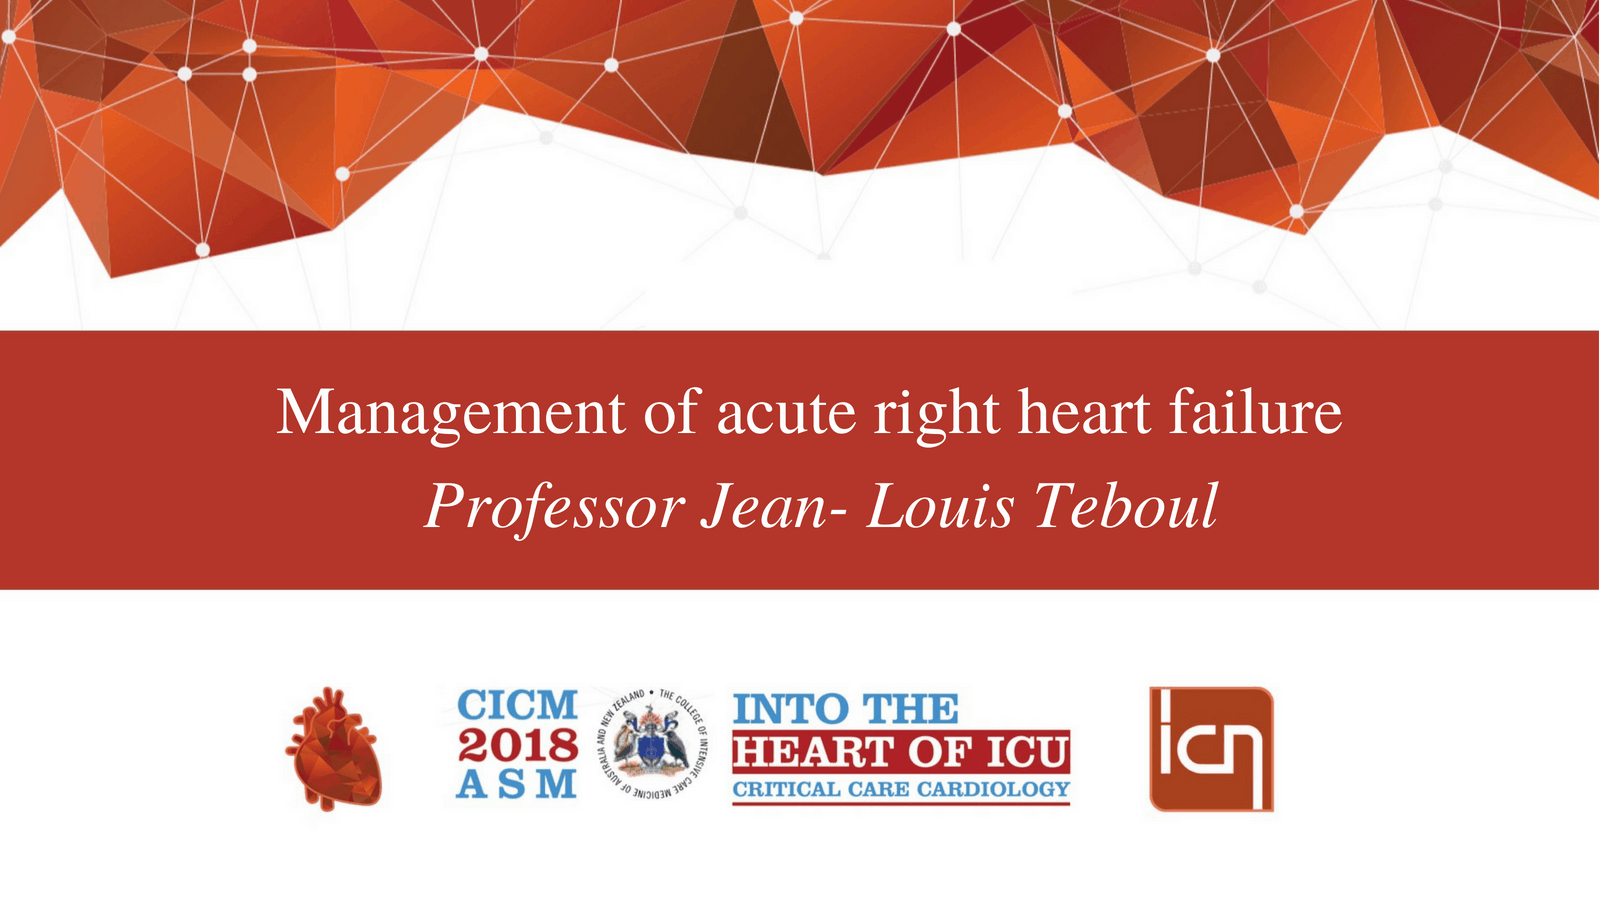 Management of acute right heart failure